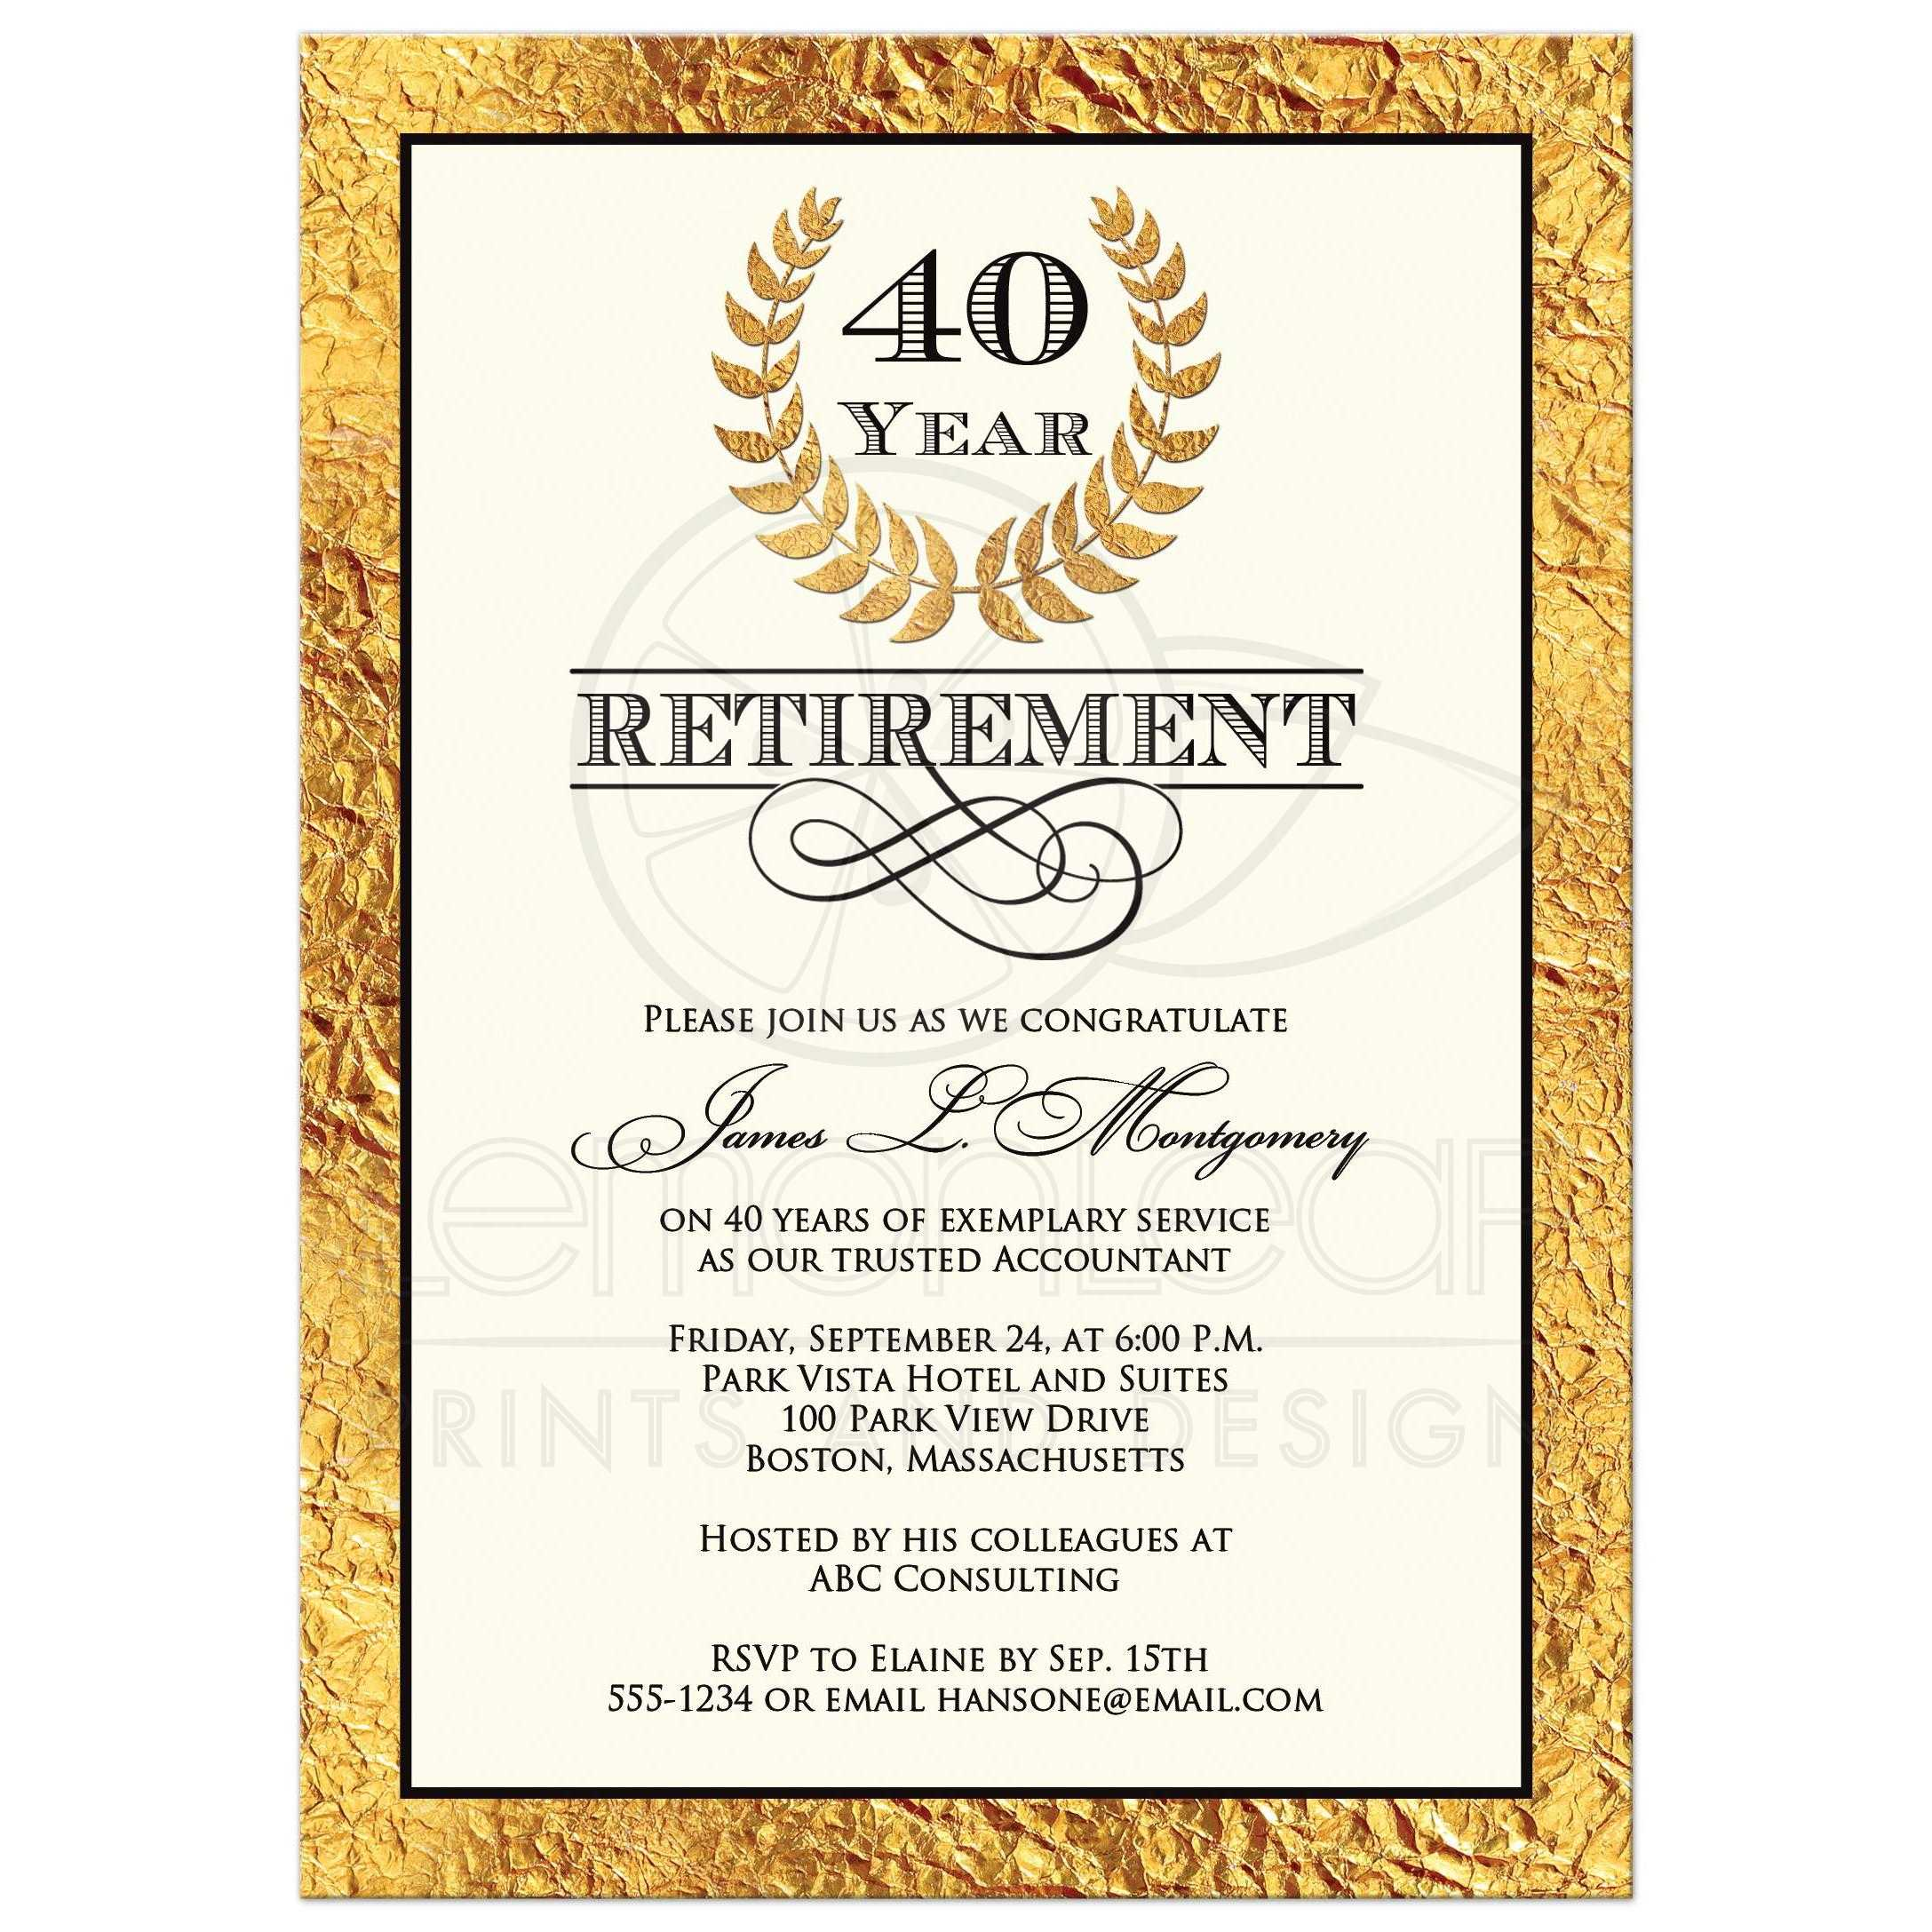 40 Year Retirement Party Invitation Distinguished Faux